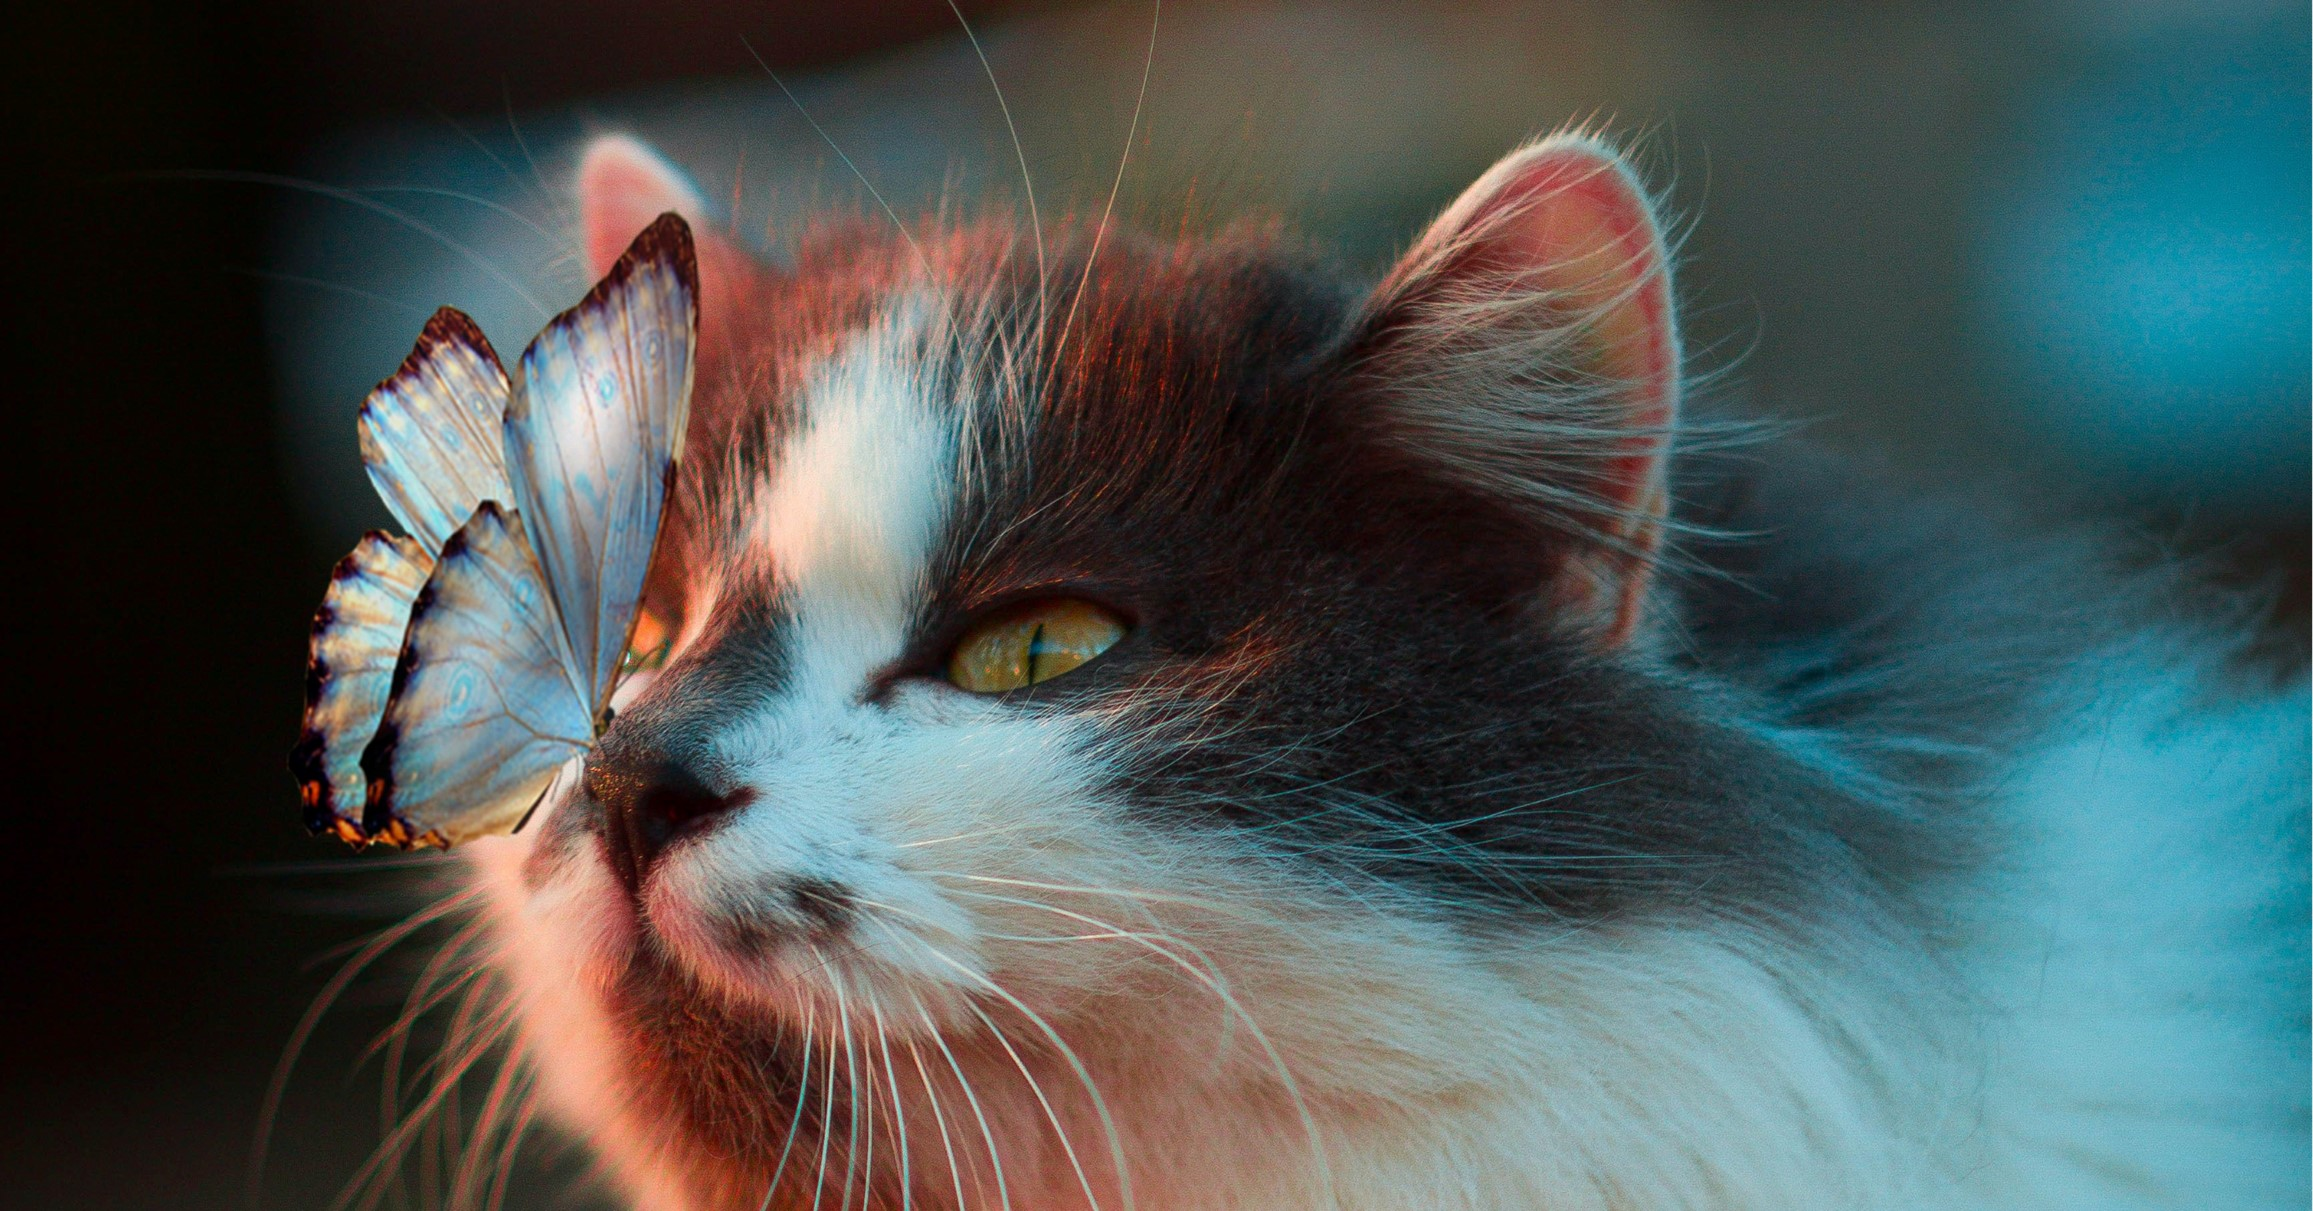 A butterfly lands on a cat's nose.